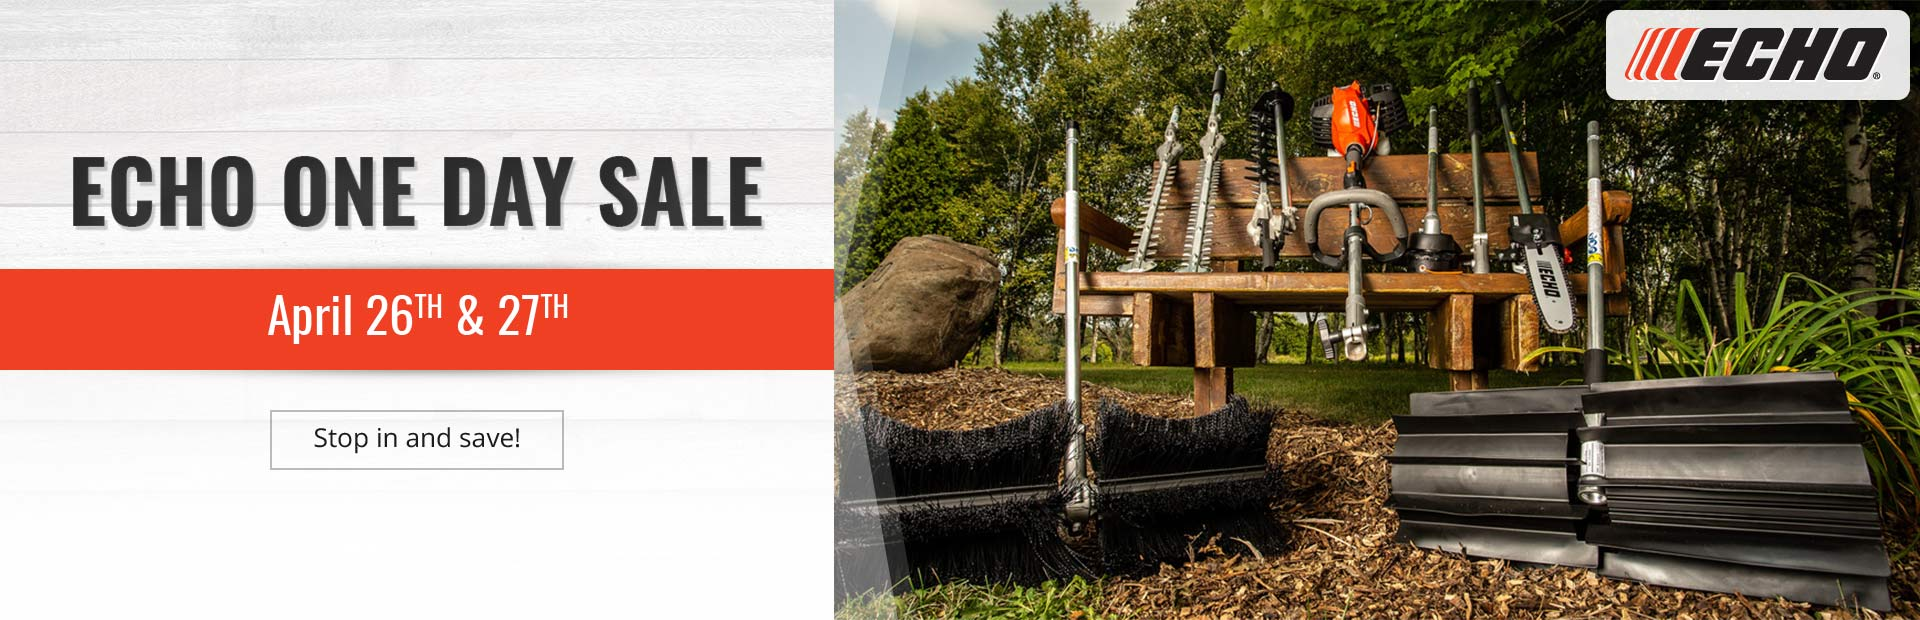 Join us April 26th & 27th for our ECHO One Day Sale!